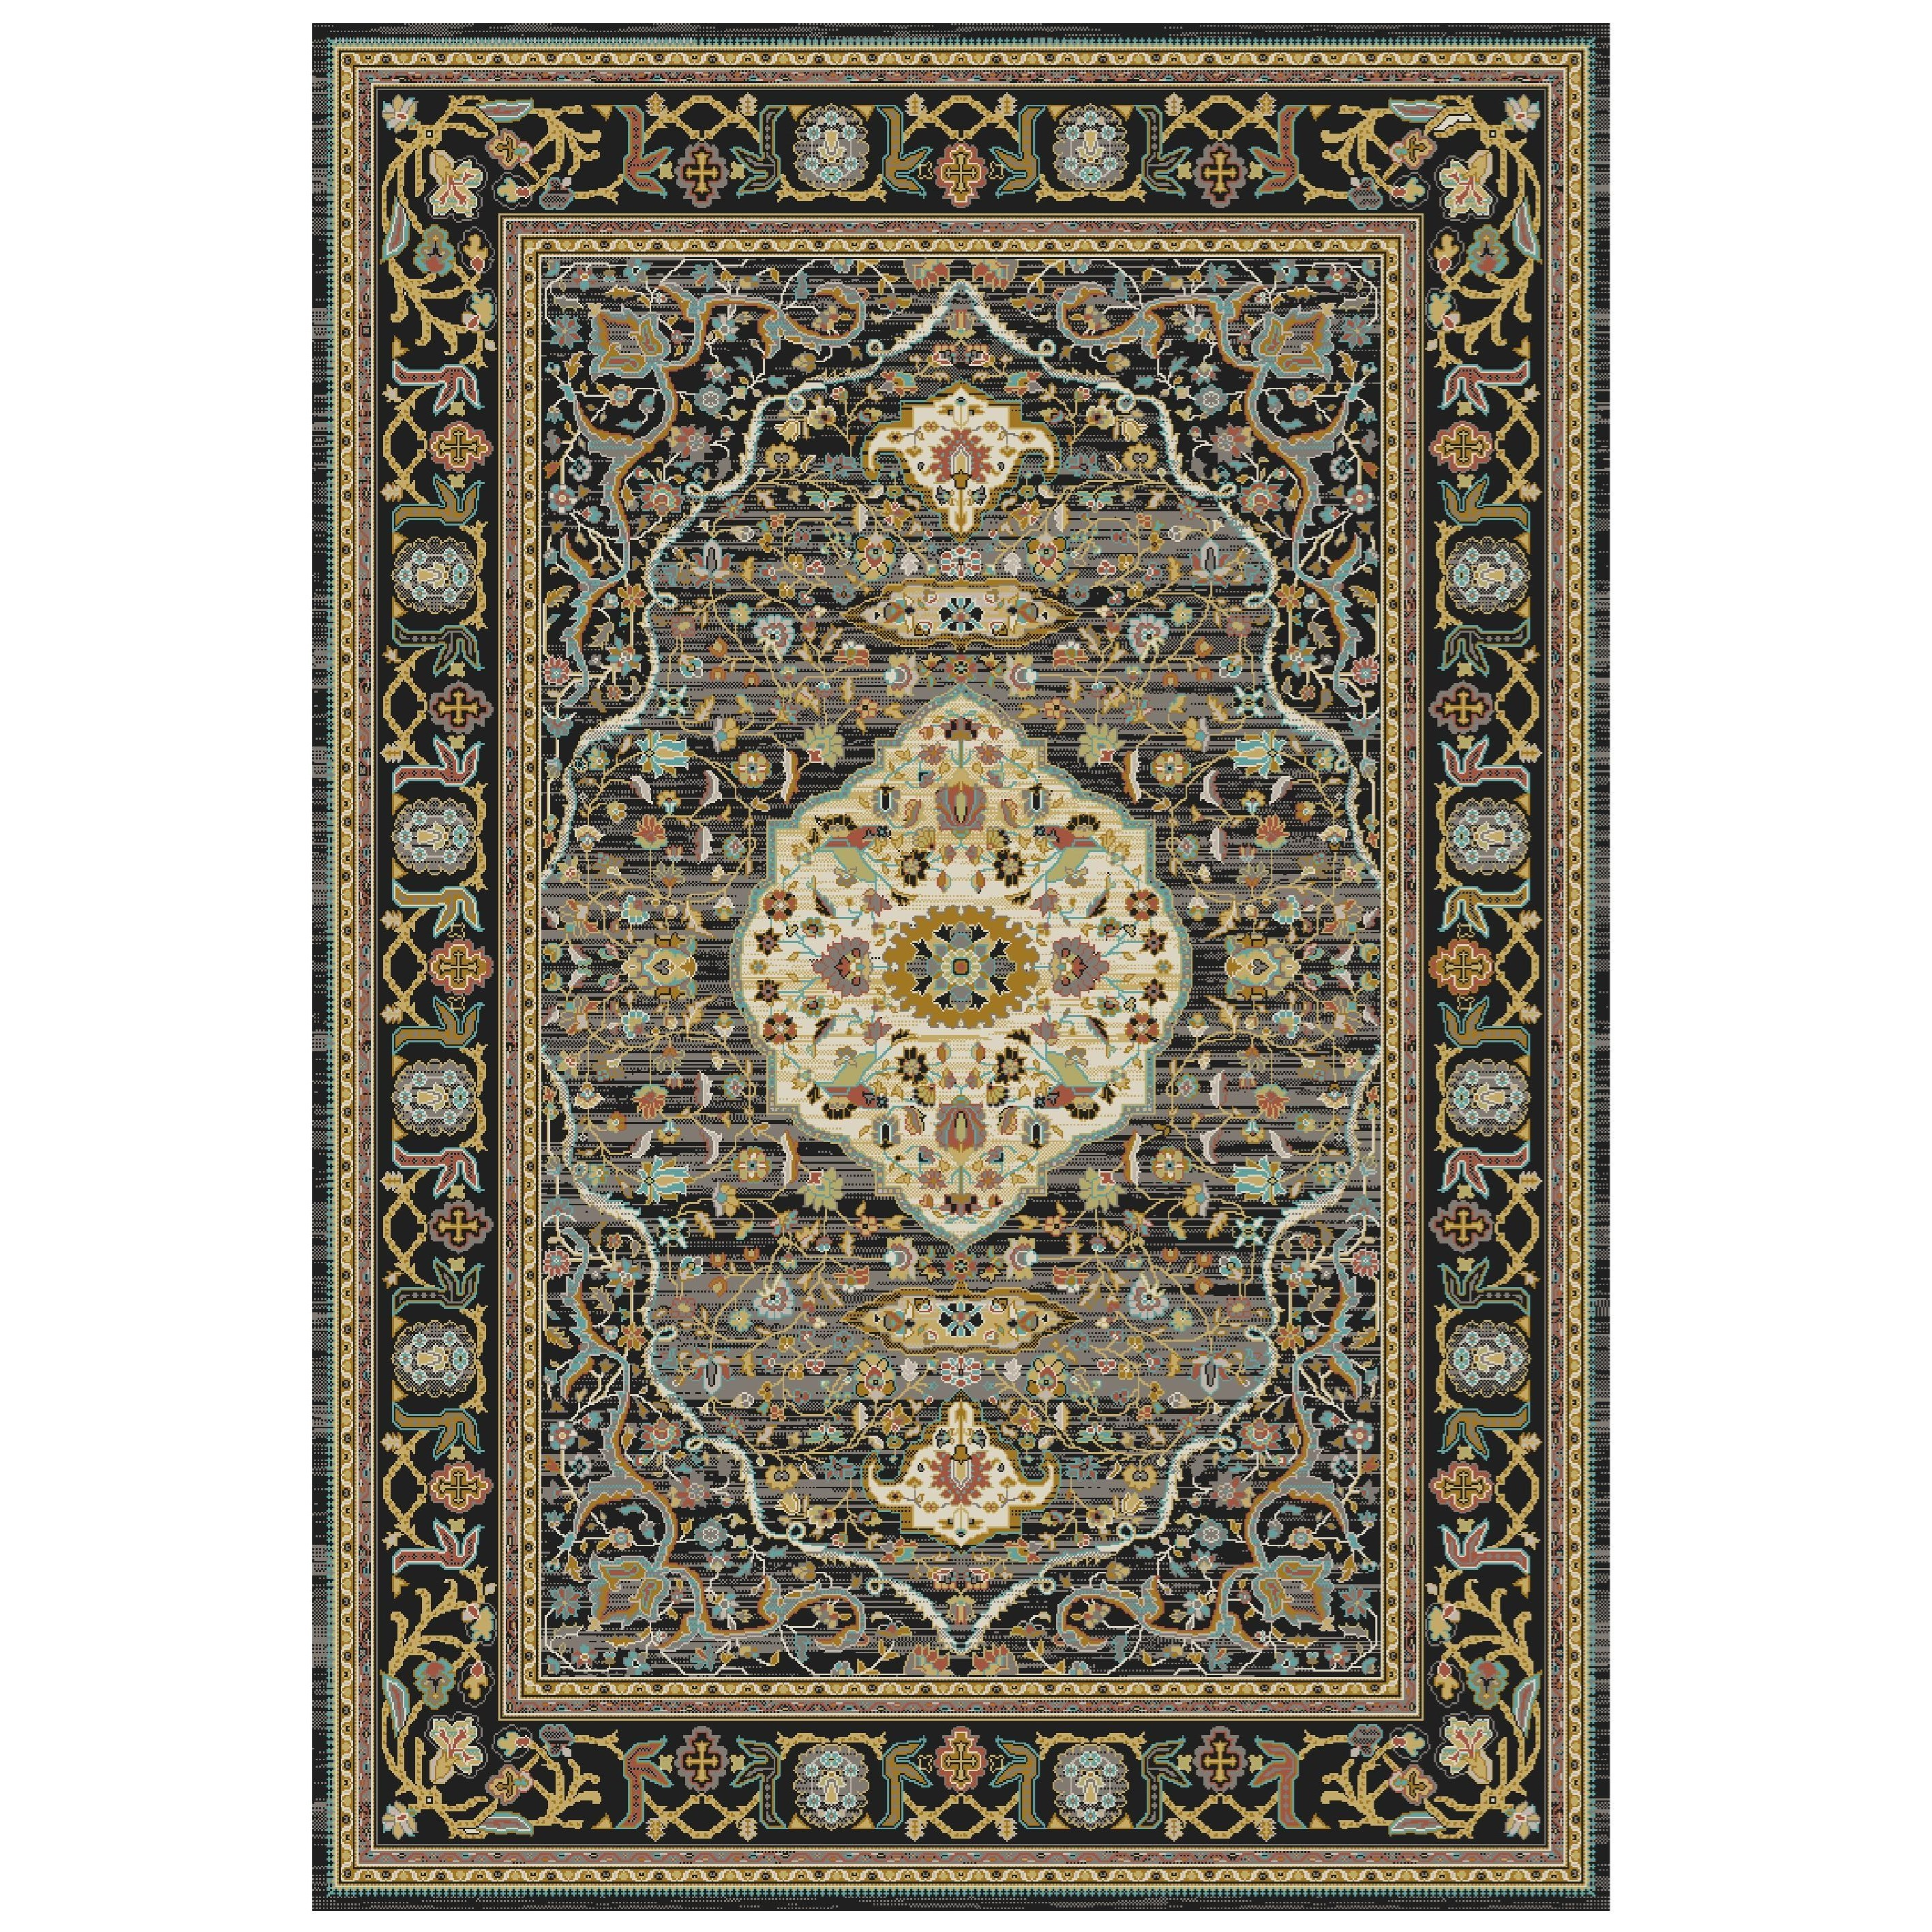 Spice Market 8'x11' Petra Charcoal Rug by Karastan Rugs at Darvin Furniture